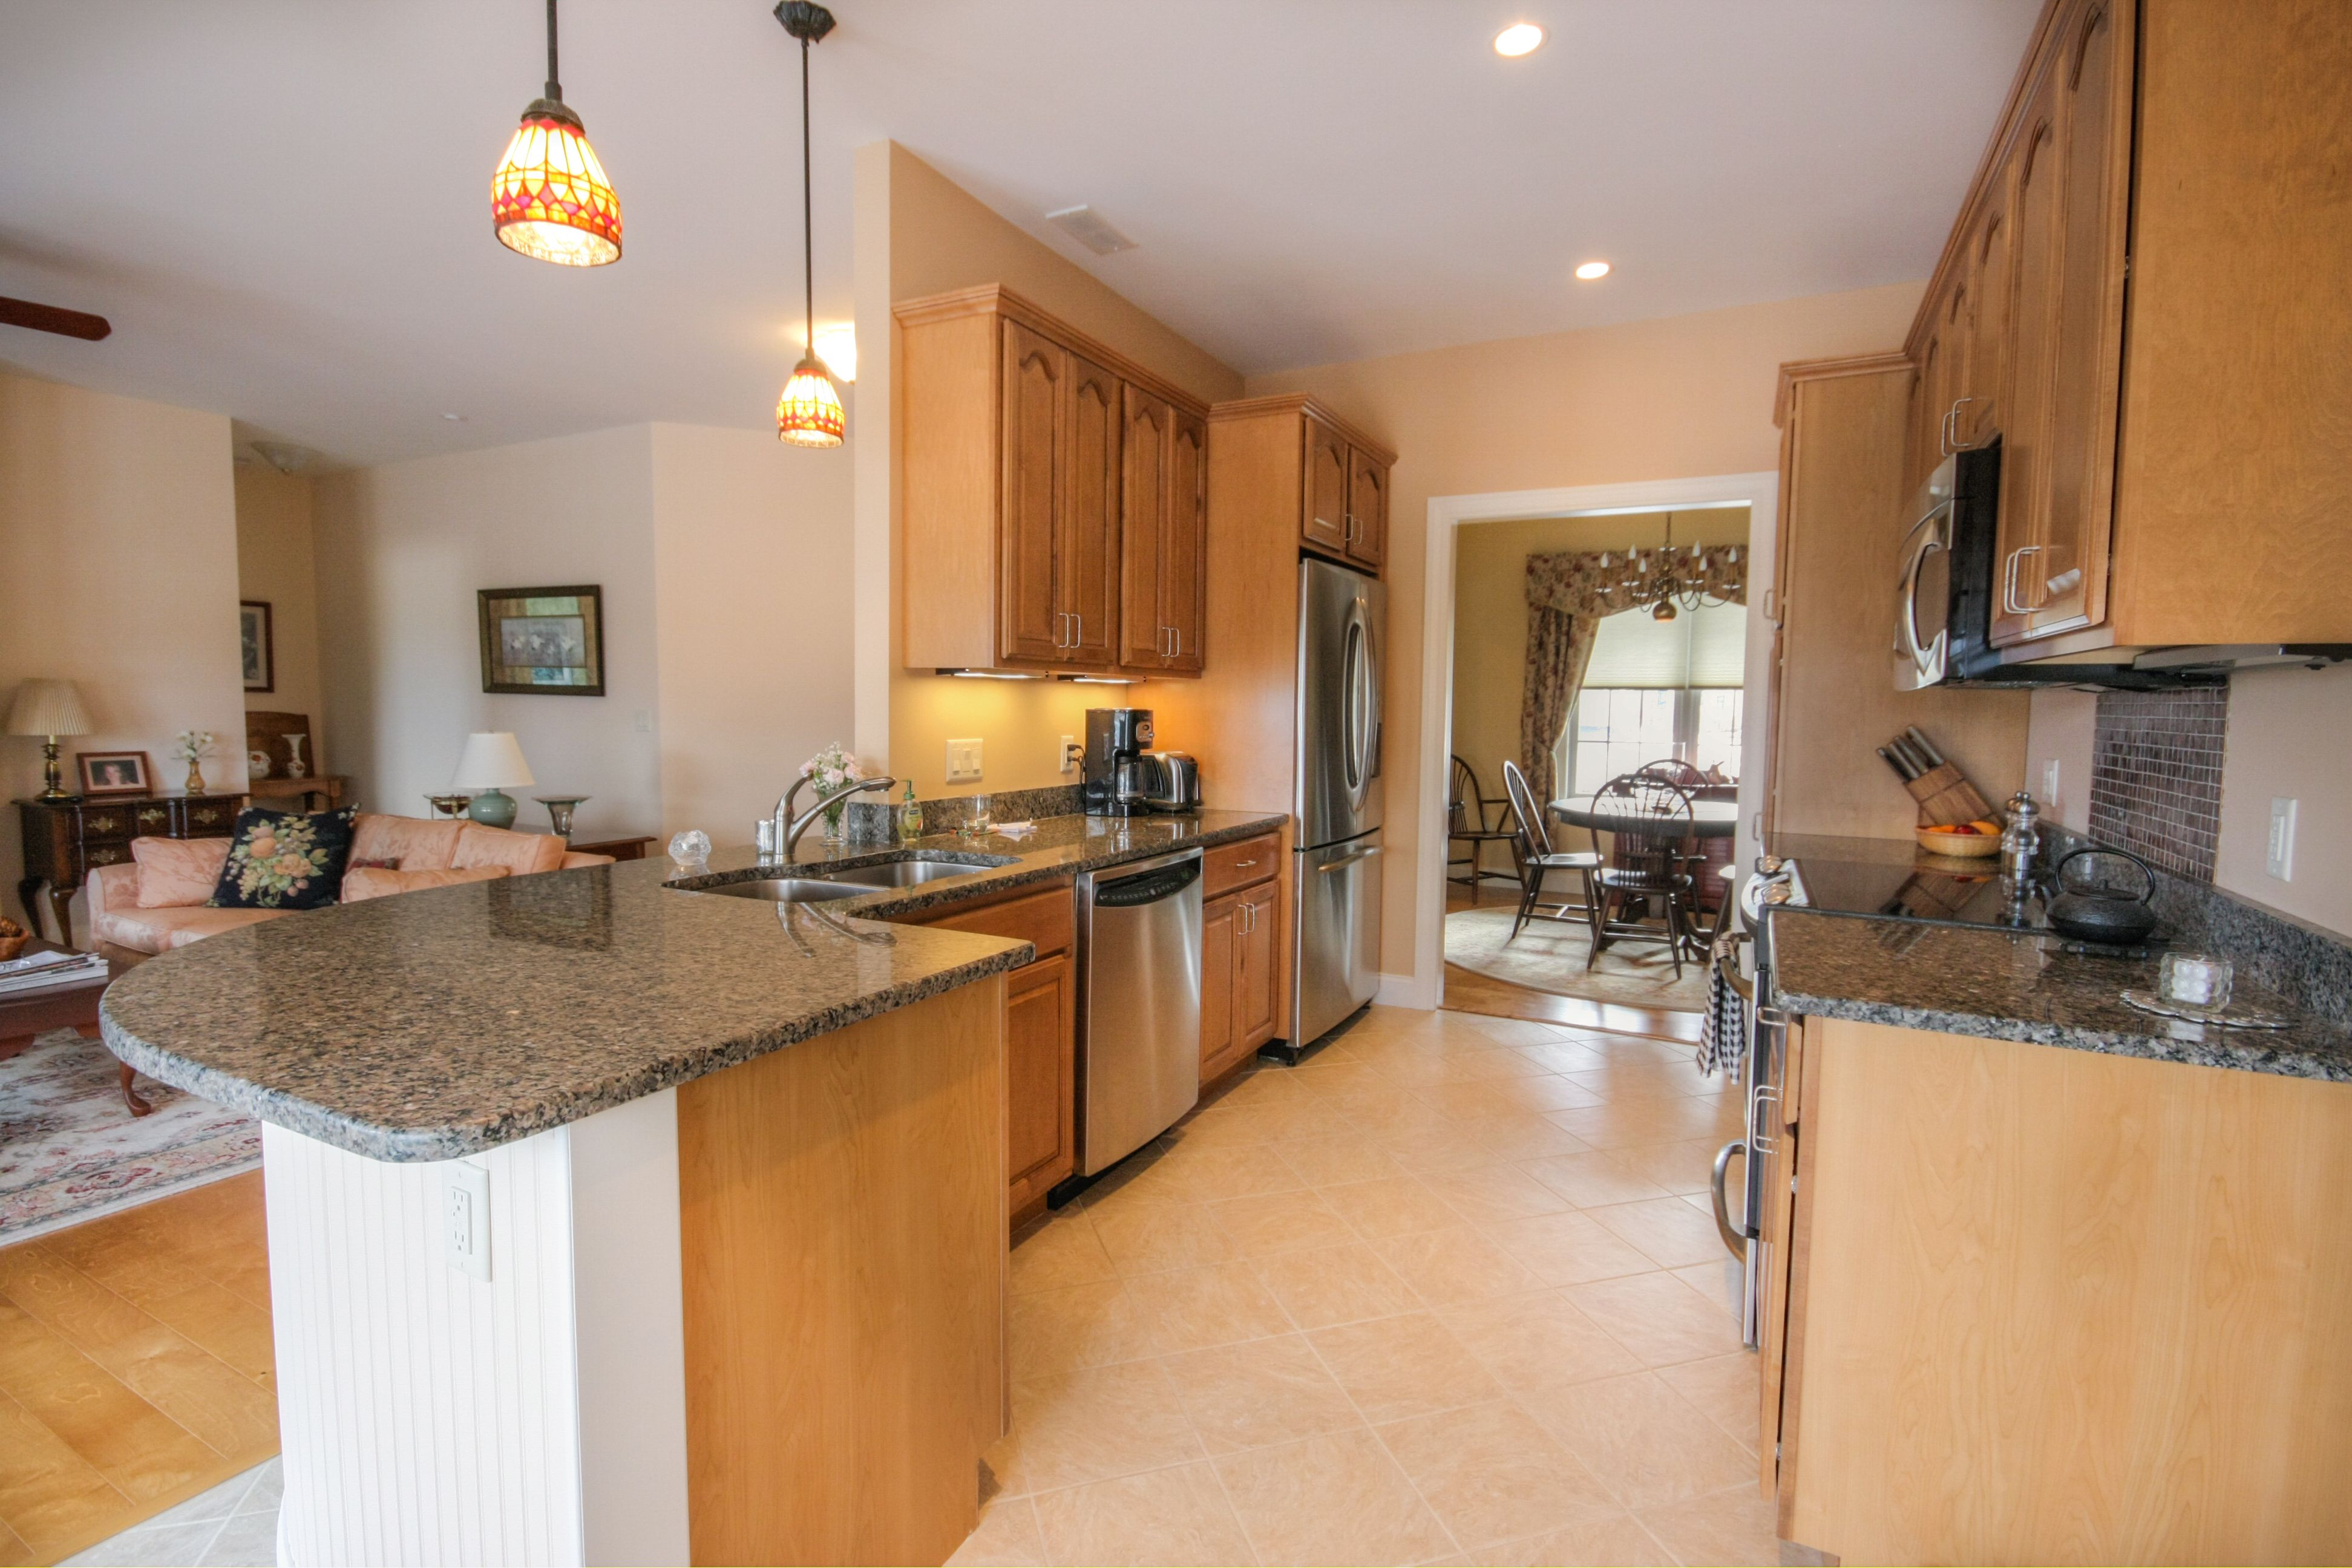 Kitchen featured in the Torrey Pines By Davis Construction Services in Burlington, VT